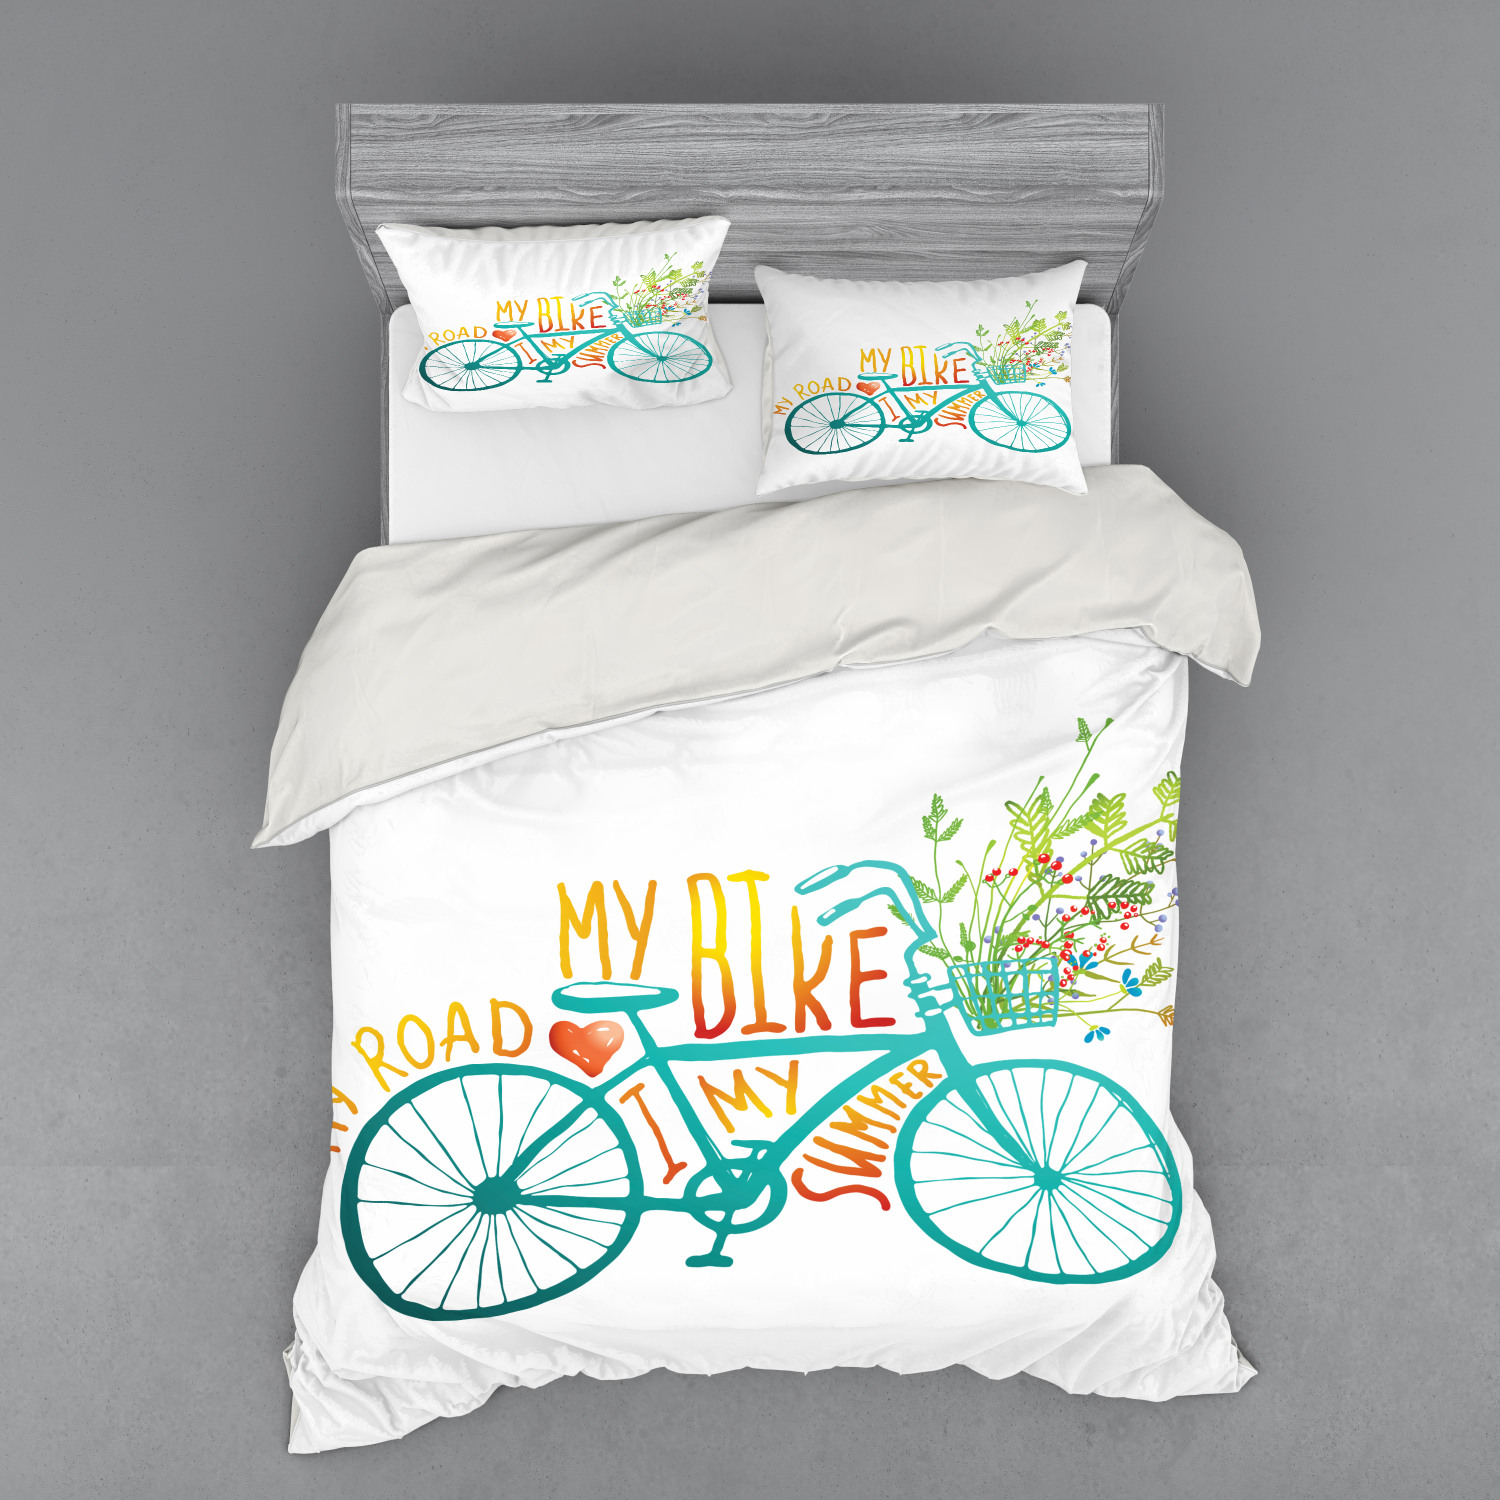 thumbnail 22 - Ambesonne Summer Bedding Set Duvet Cover Sham Fitted Sheet in 3 Sizes